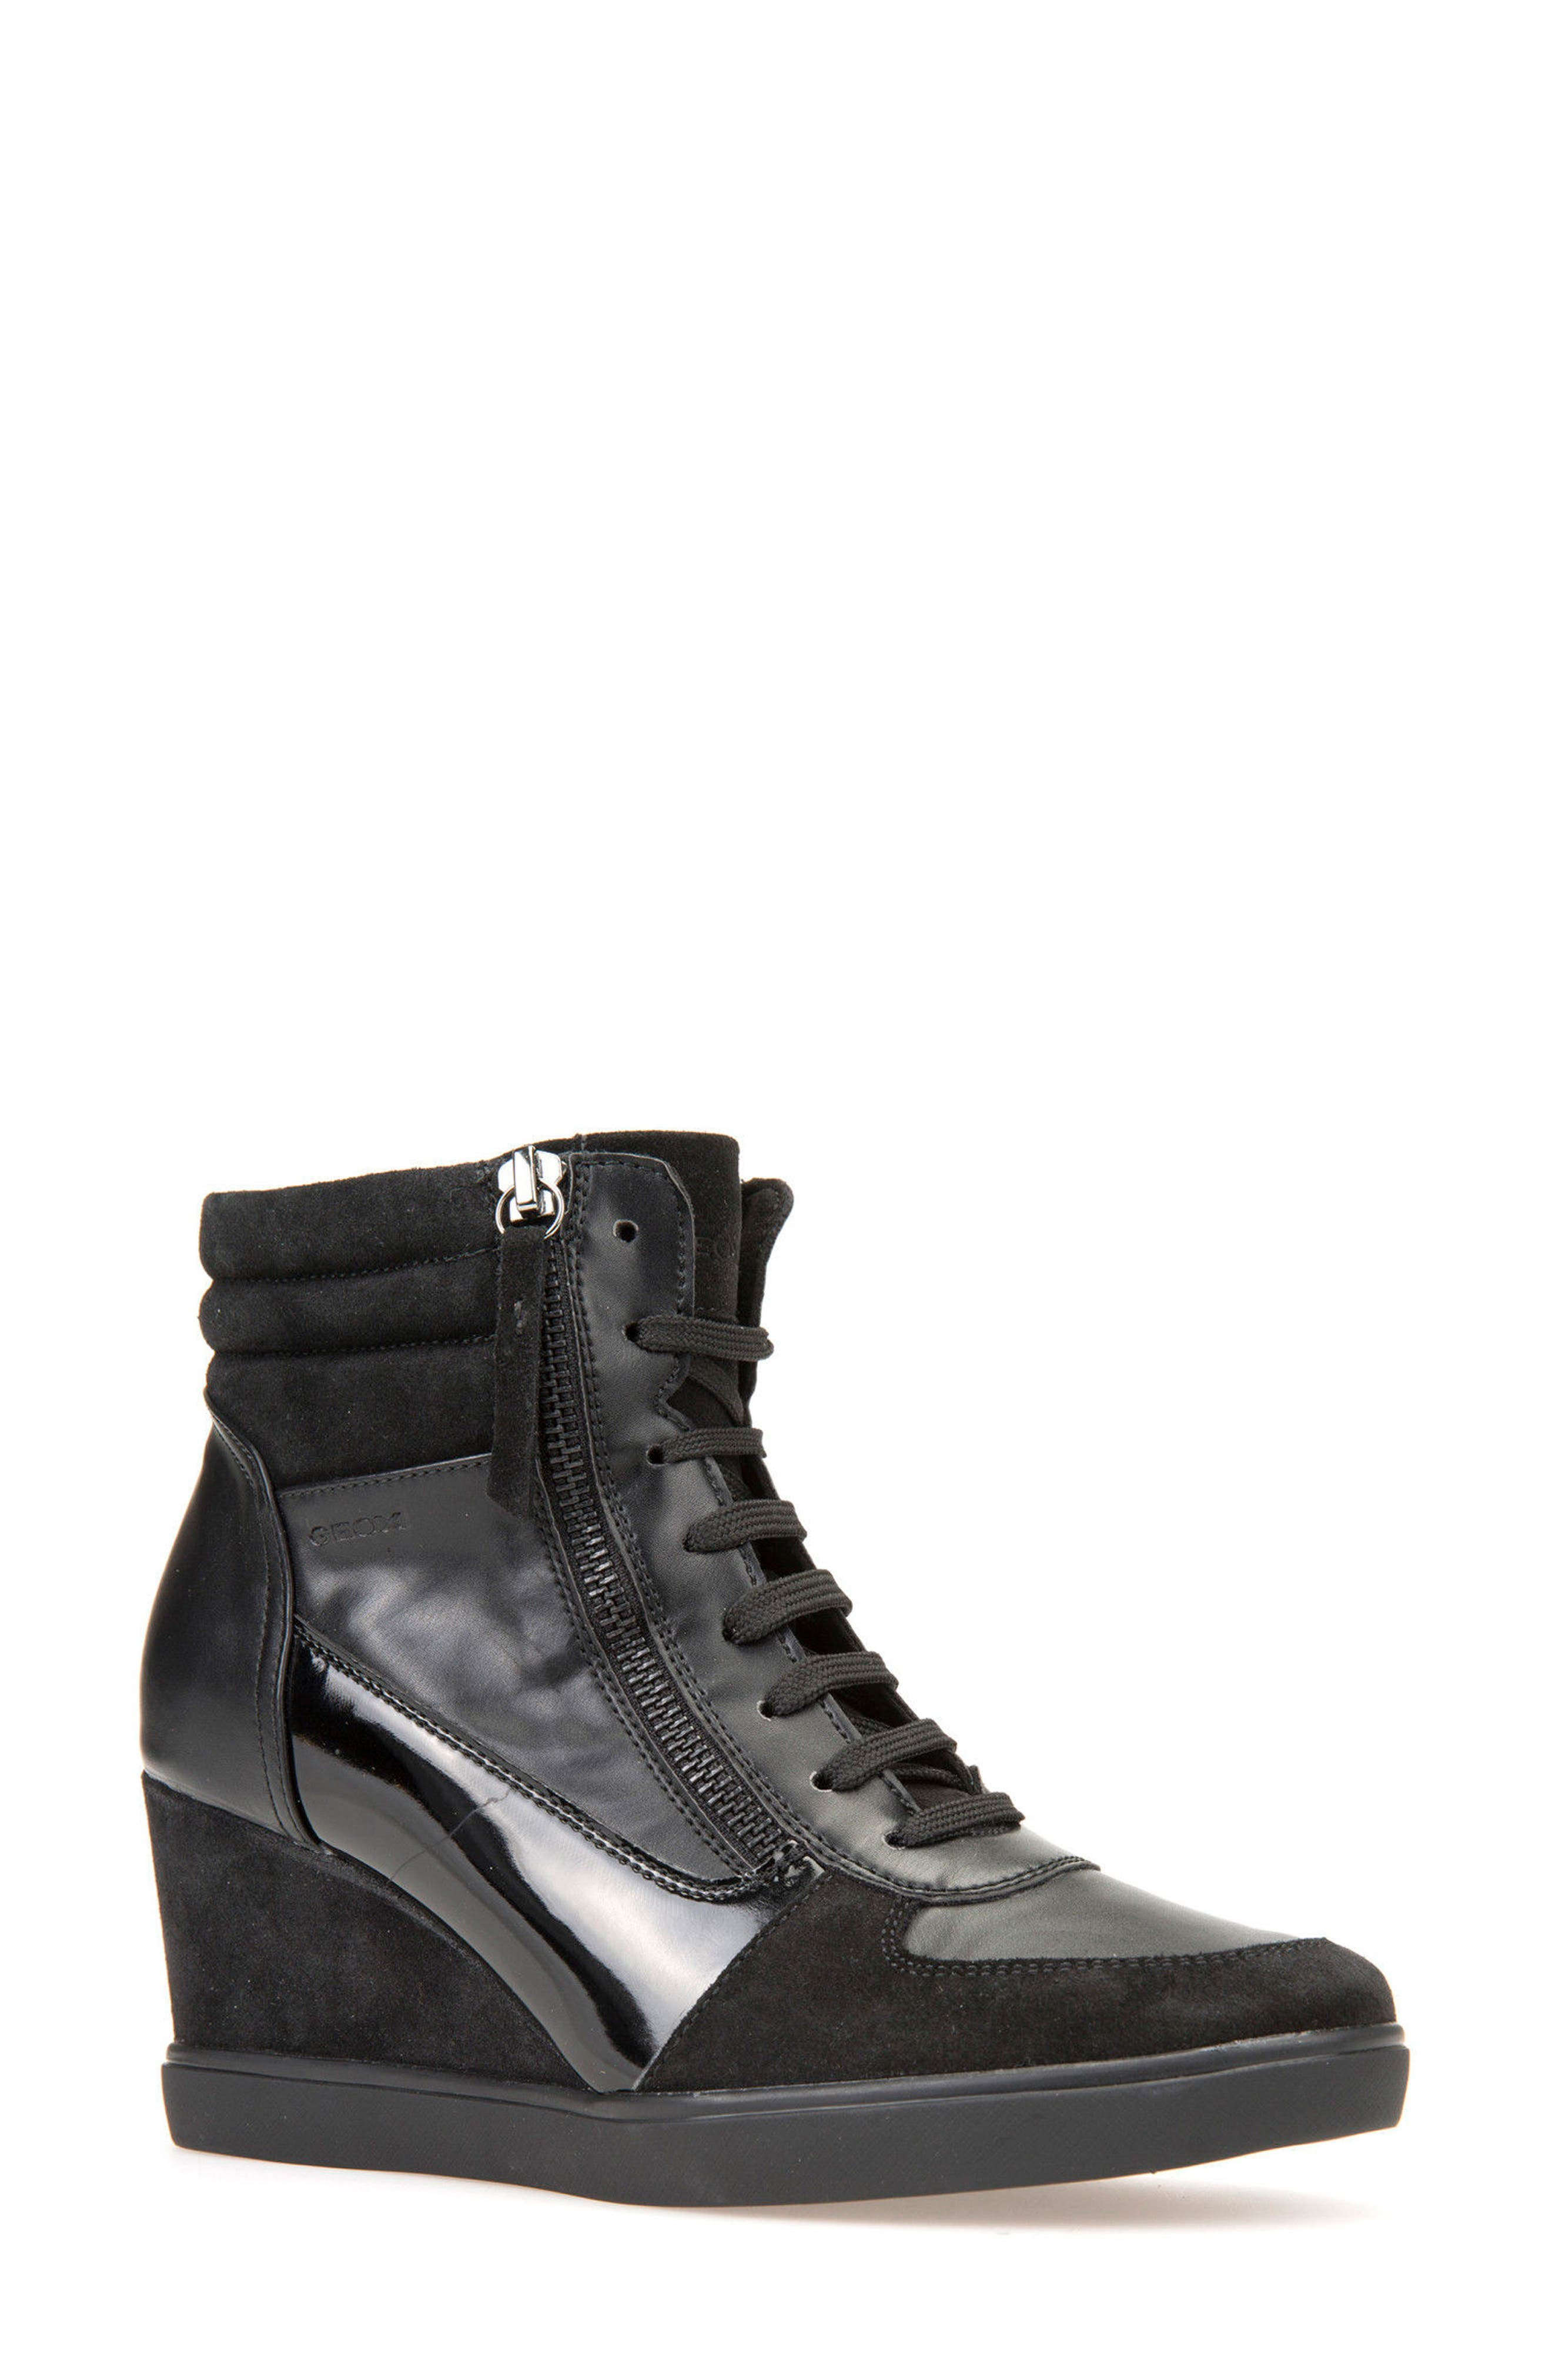 Main Image - Geox Eleni Lace-Up Wedge Bootie (Women)